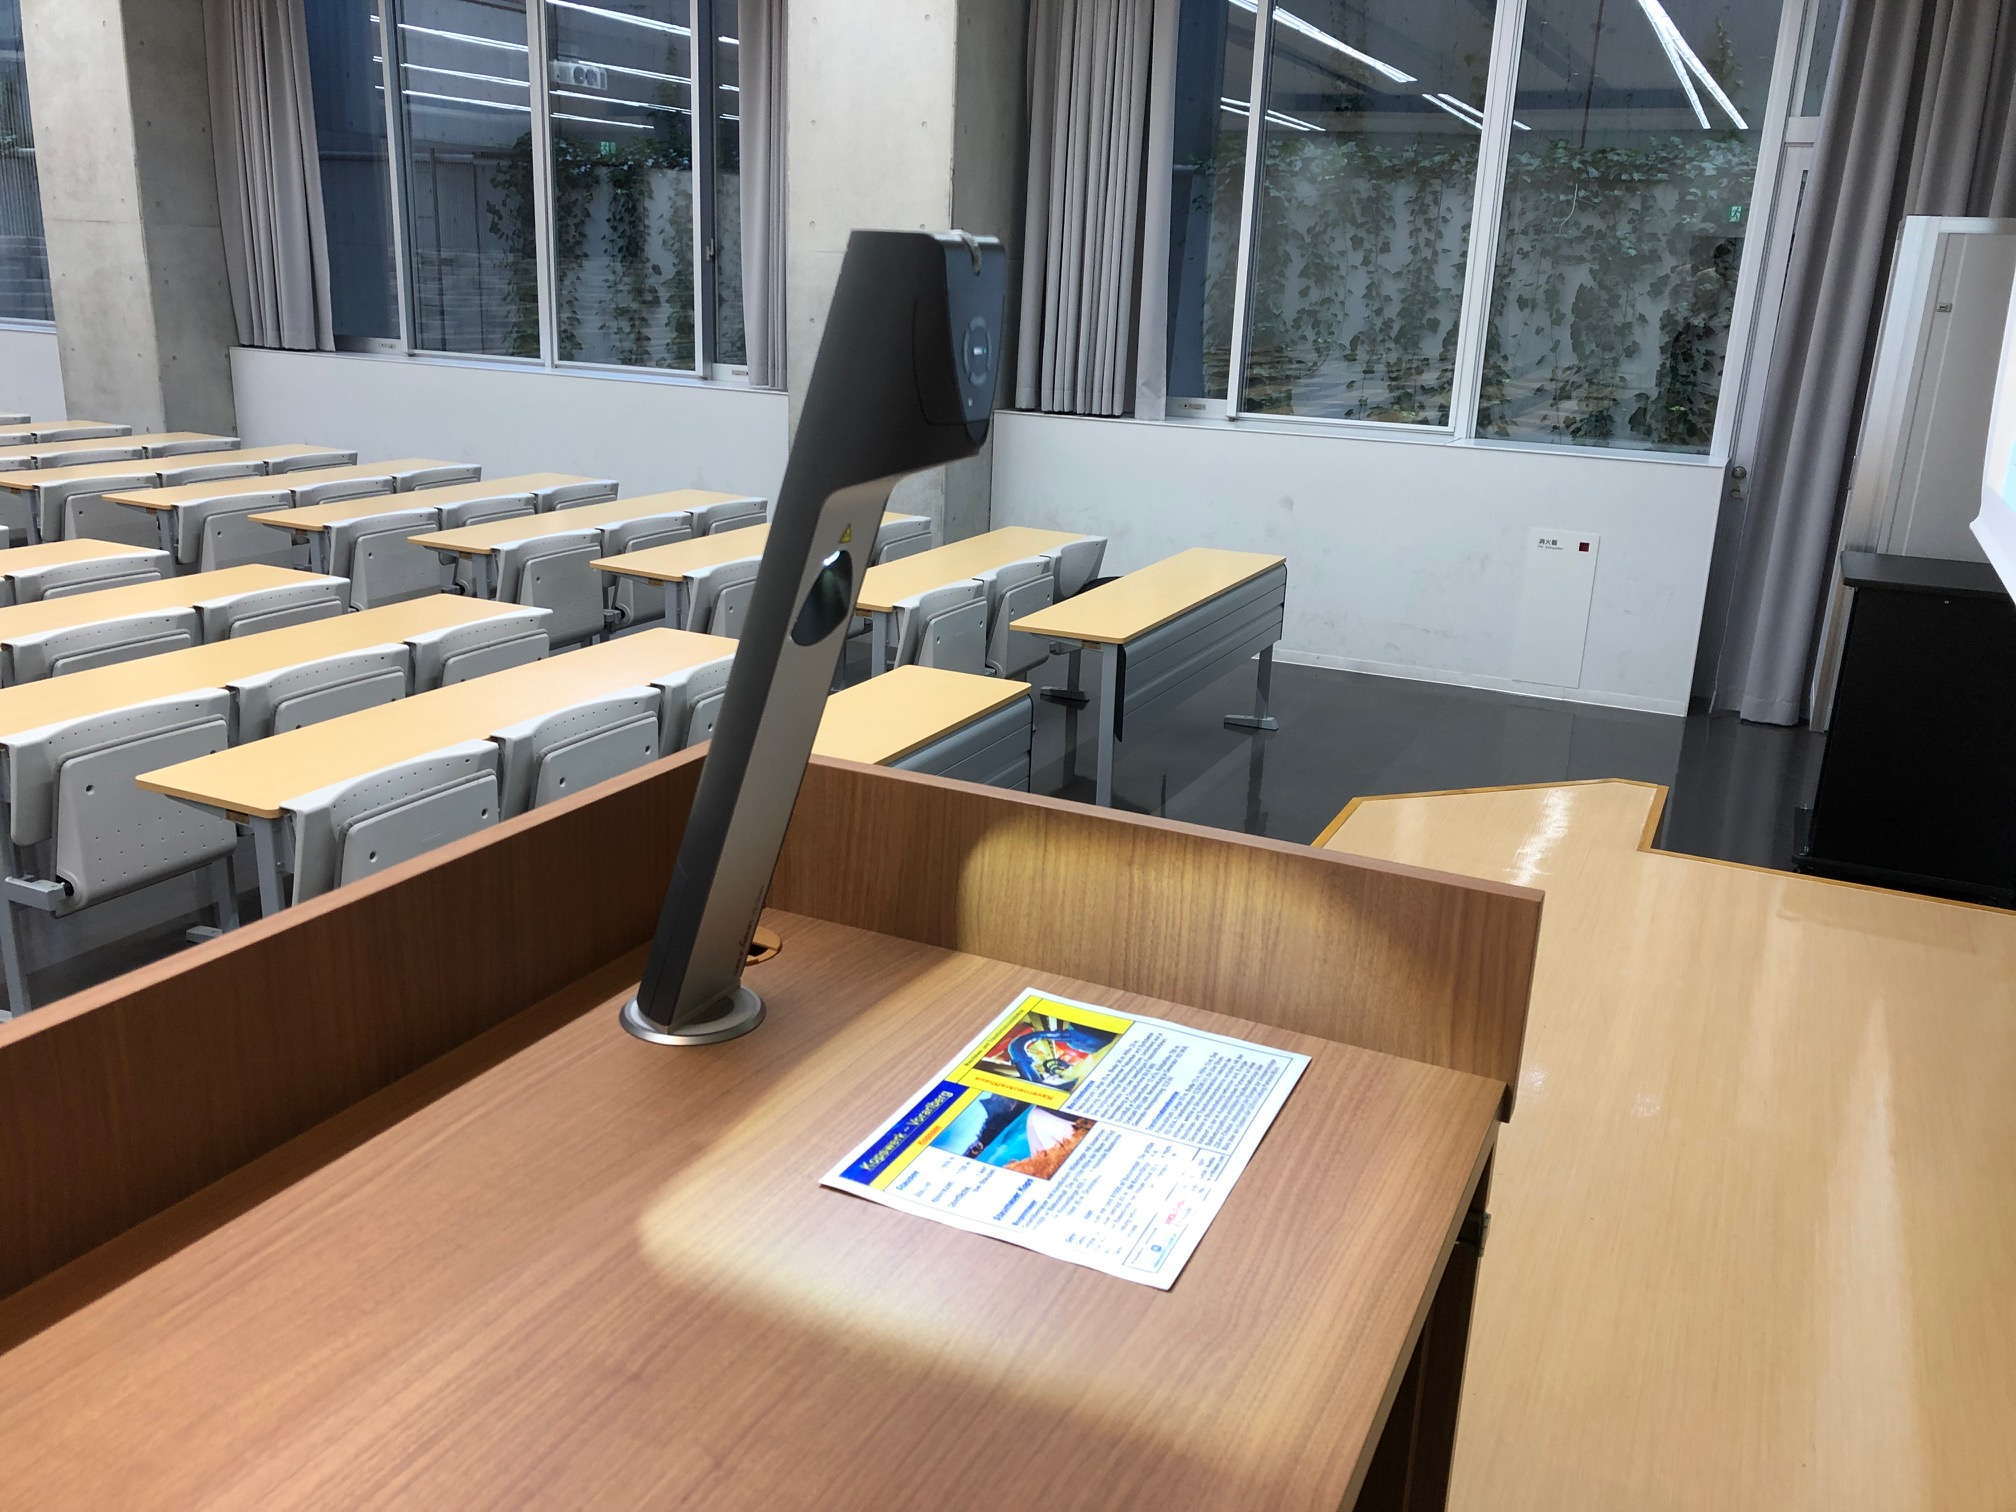 WolfVision VZ-3neo installed at Tokyo Keizai University, Japan